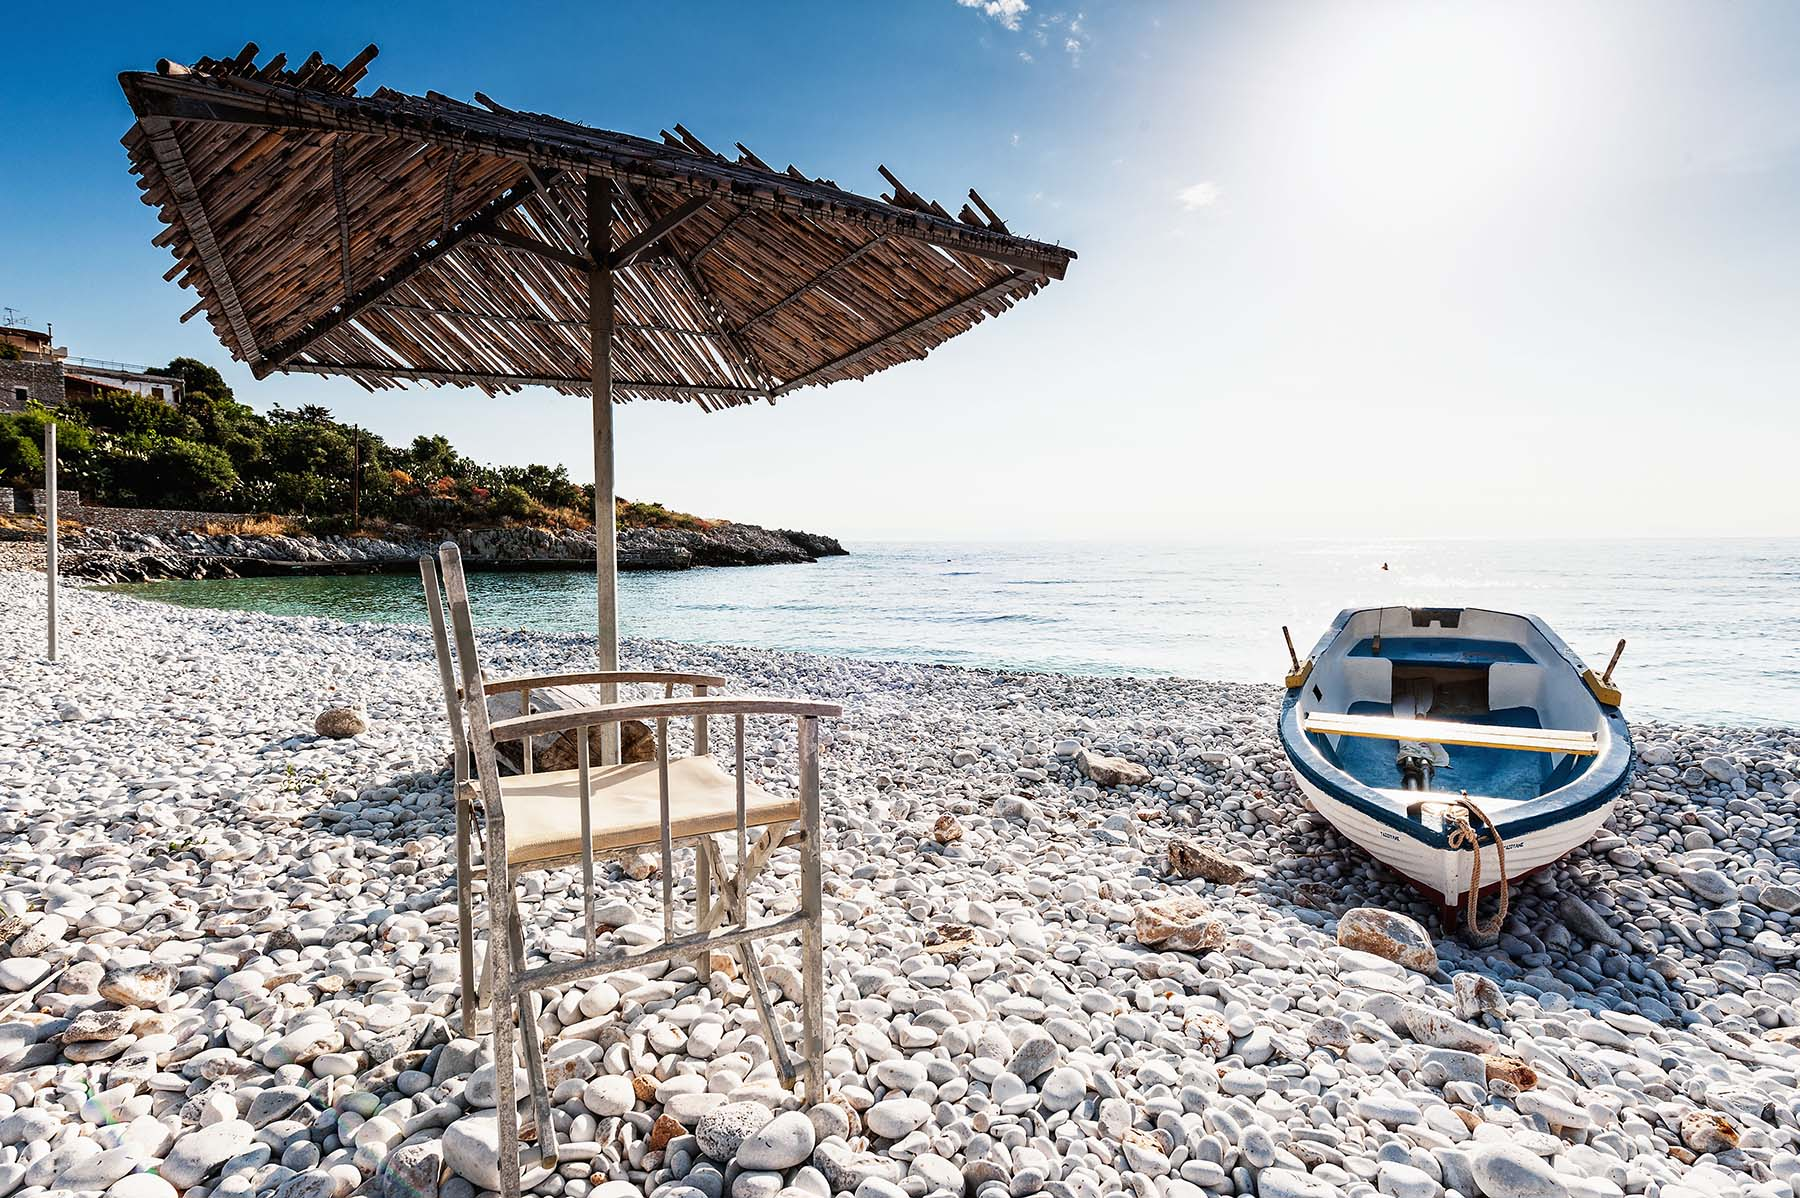 On Assignment on Peloponnese, Greece